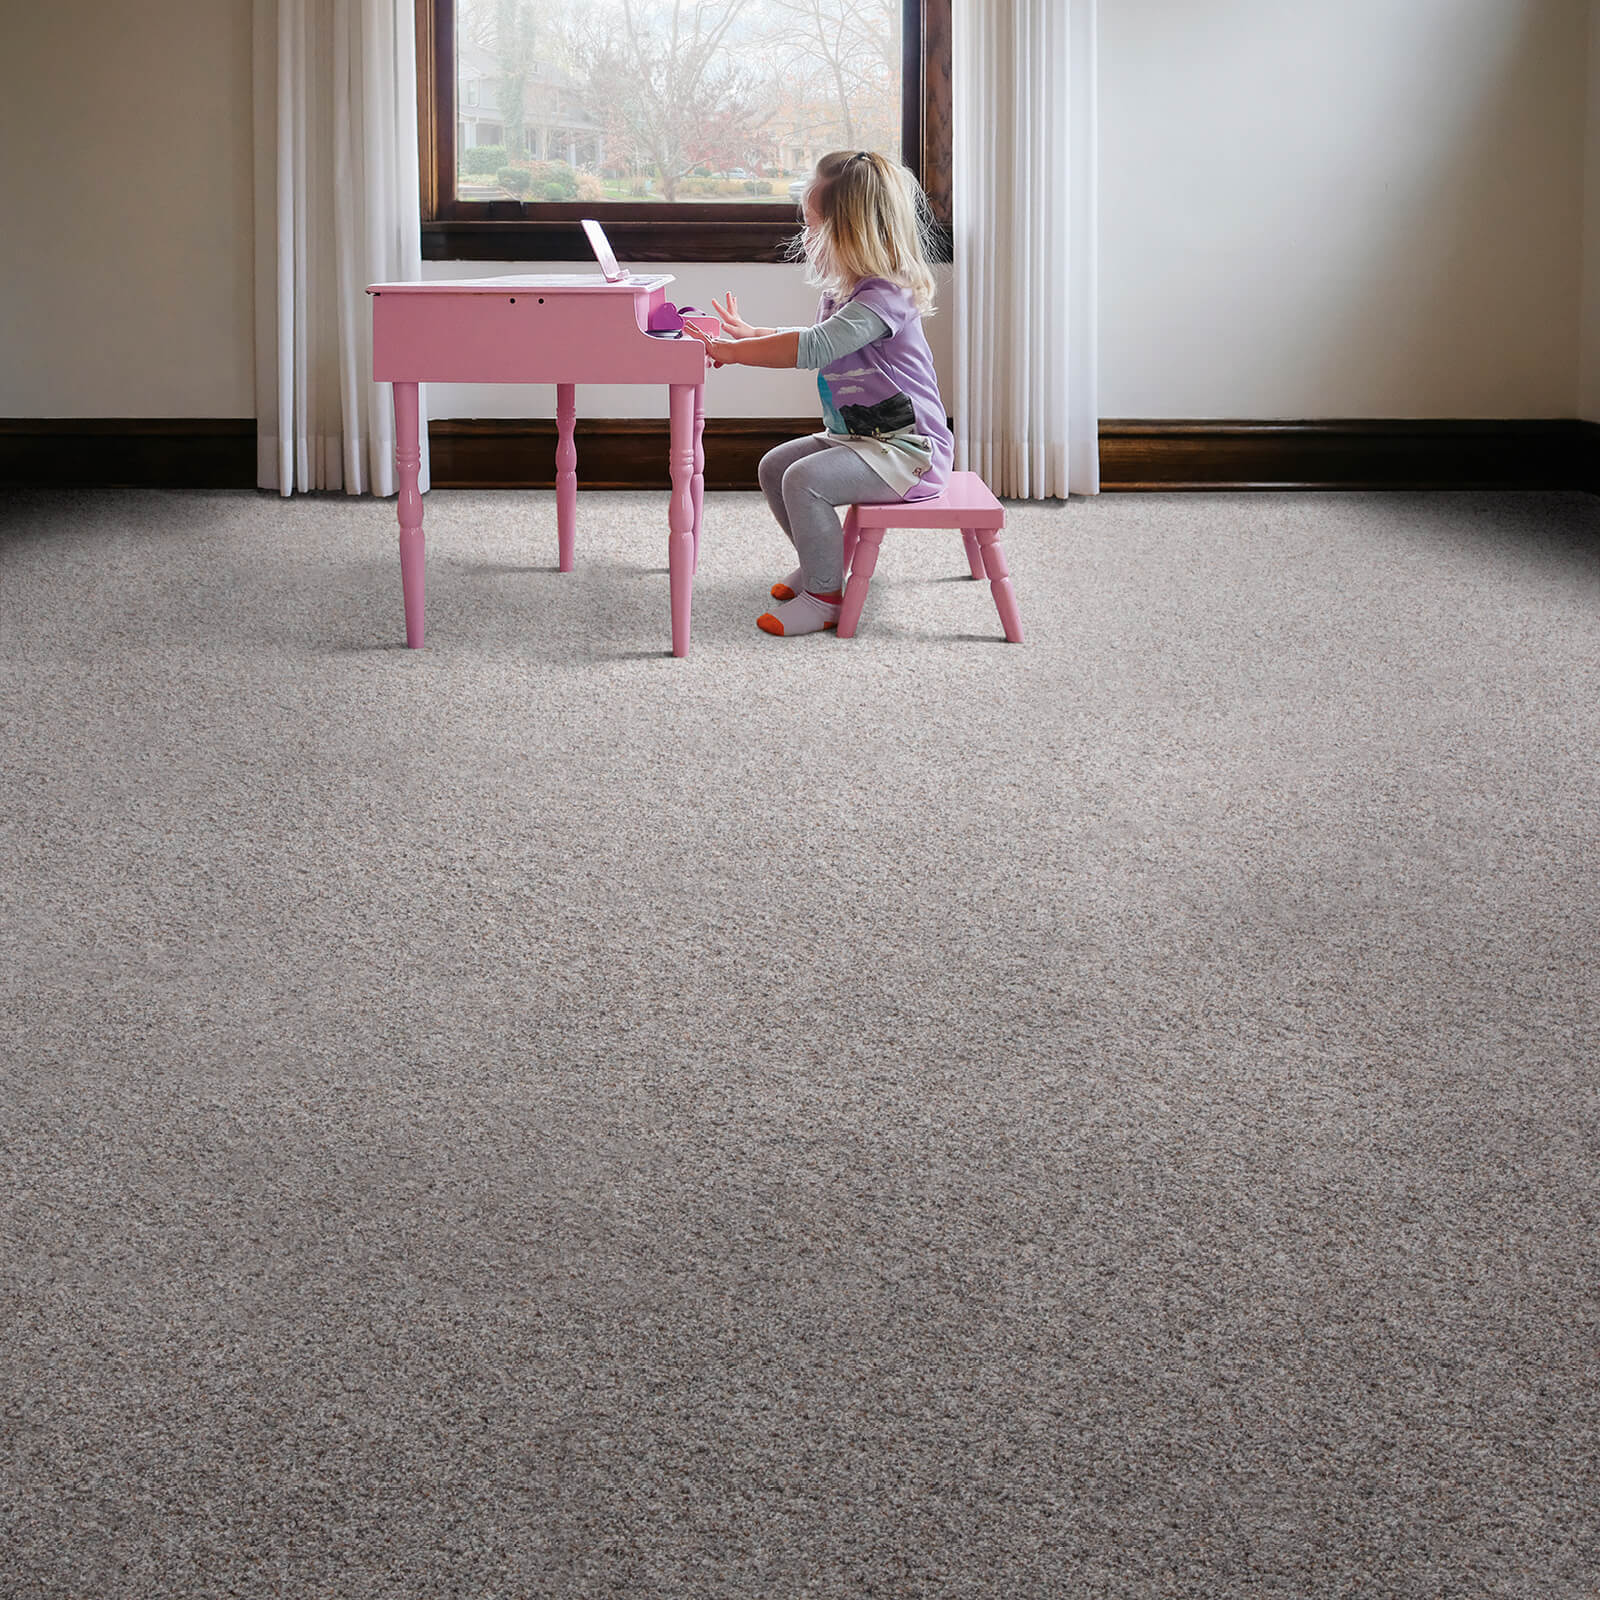 Girl with piano on Carpet flooring | Floorida Floors